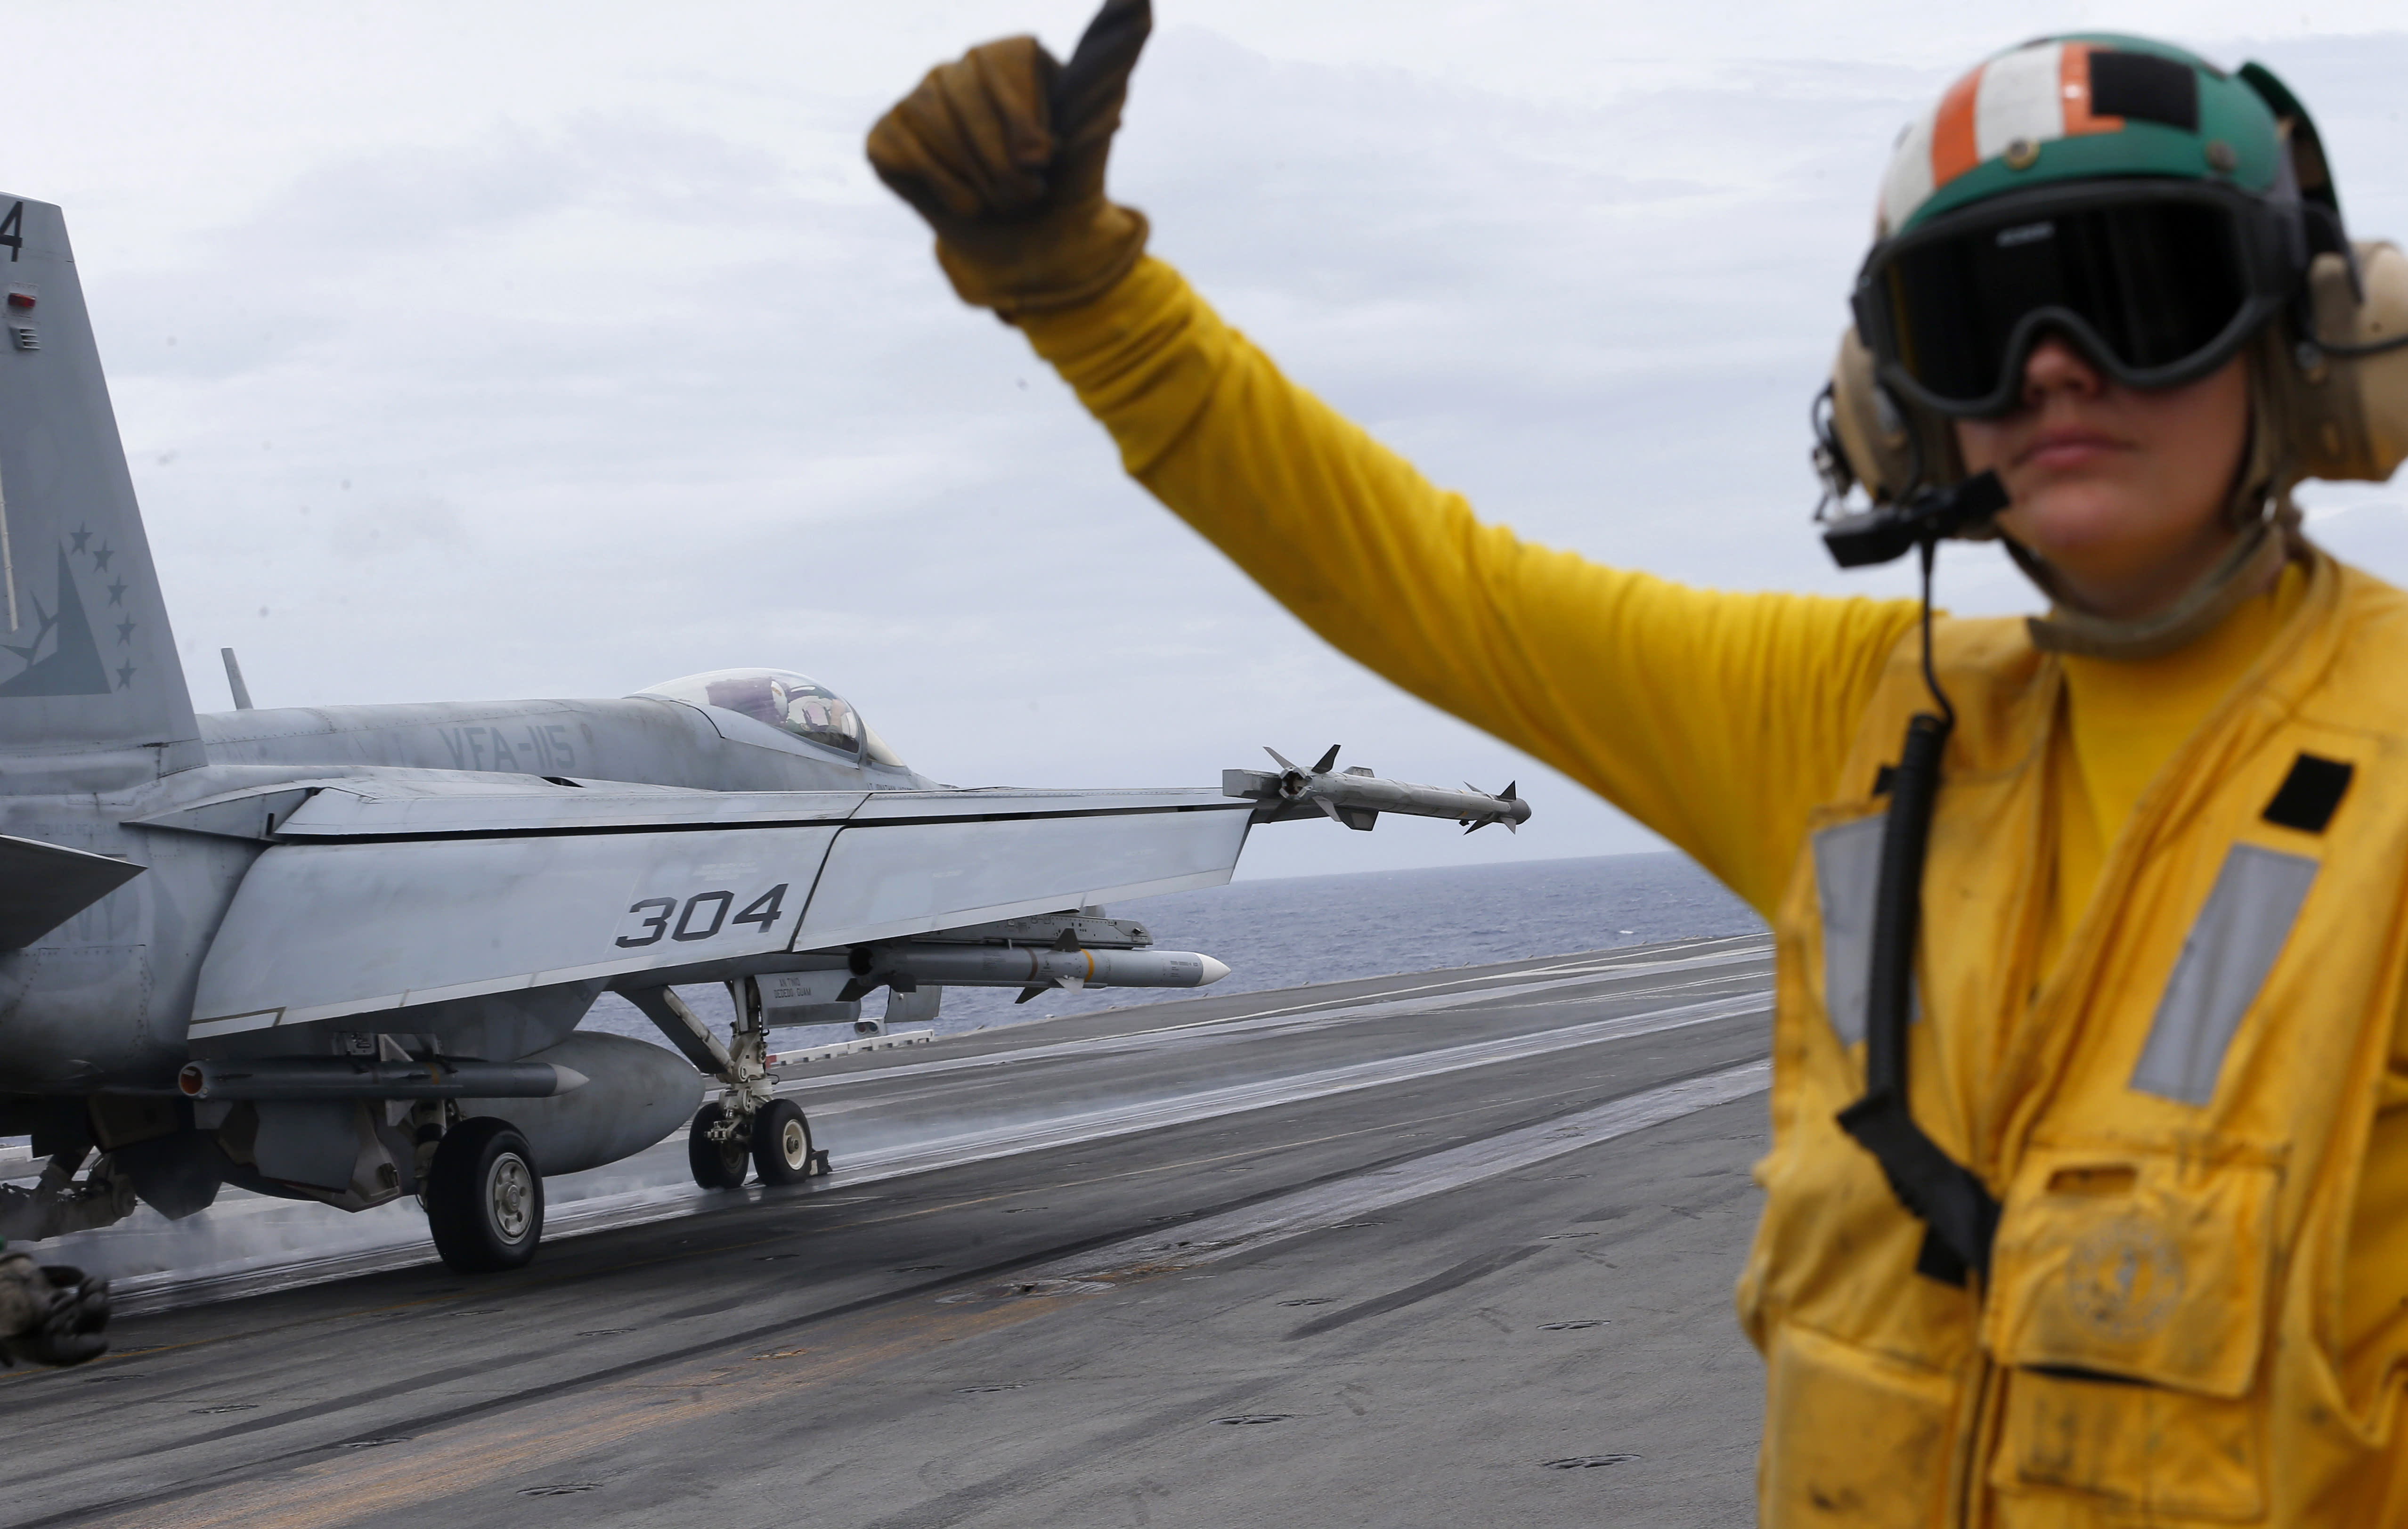 A U.S. fighter jet takes off from the U.S. aircraft carrier USS Ronald Reagan for their patrol at the international waters off South China Sea Tuesday, Aug. 6, 2019. The U.S. aircraft carrier has sailed through the disputed South China Sea in the latest show of America's military might amid new territorial flareups involving China and three rival claimant states as Philippines, Vietnam and Malaysia. (AP Photo/Bullit Marquez)